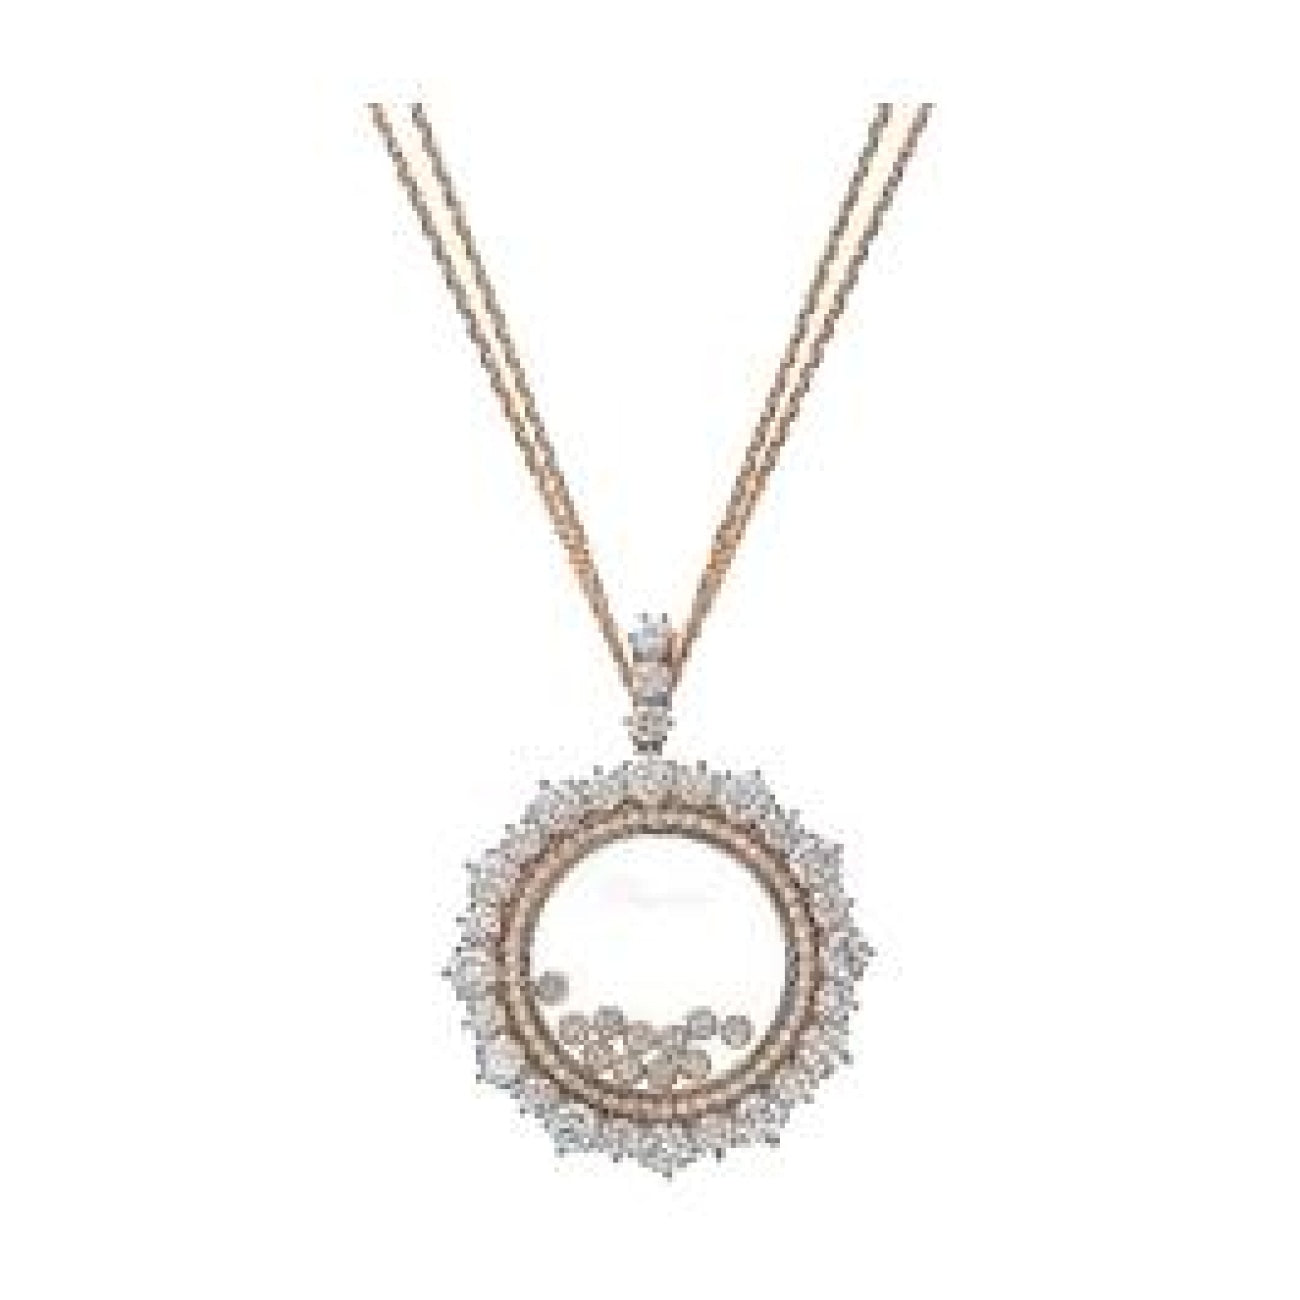 Chopard Jewelry - ROSE GOLD PENDANT HAPPY DIAMONDS WITH CHAIN | Manfredi Jewels